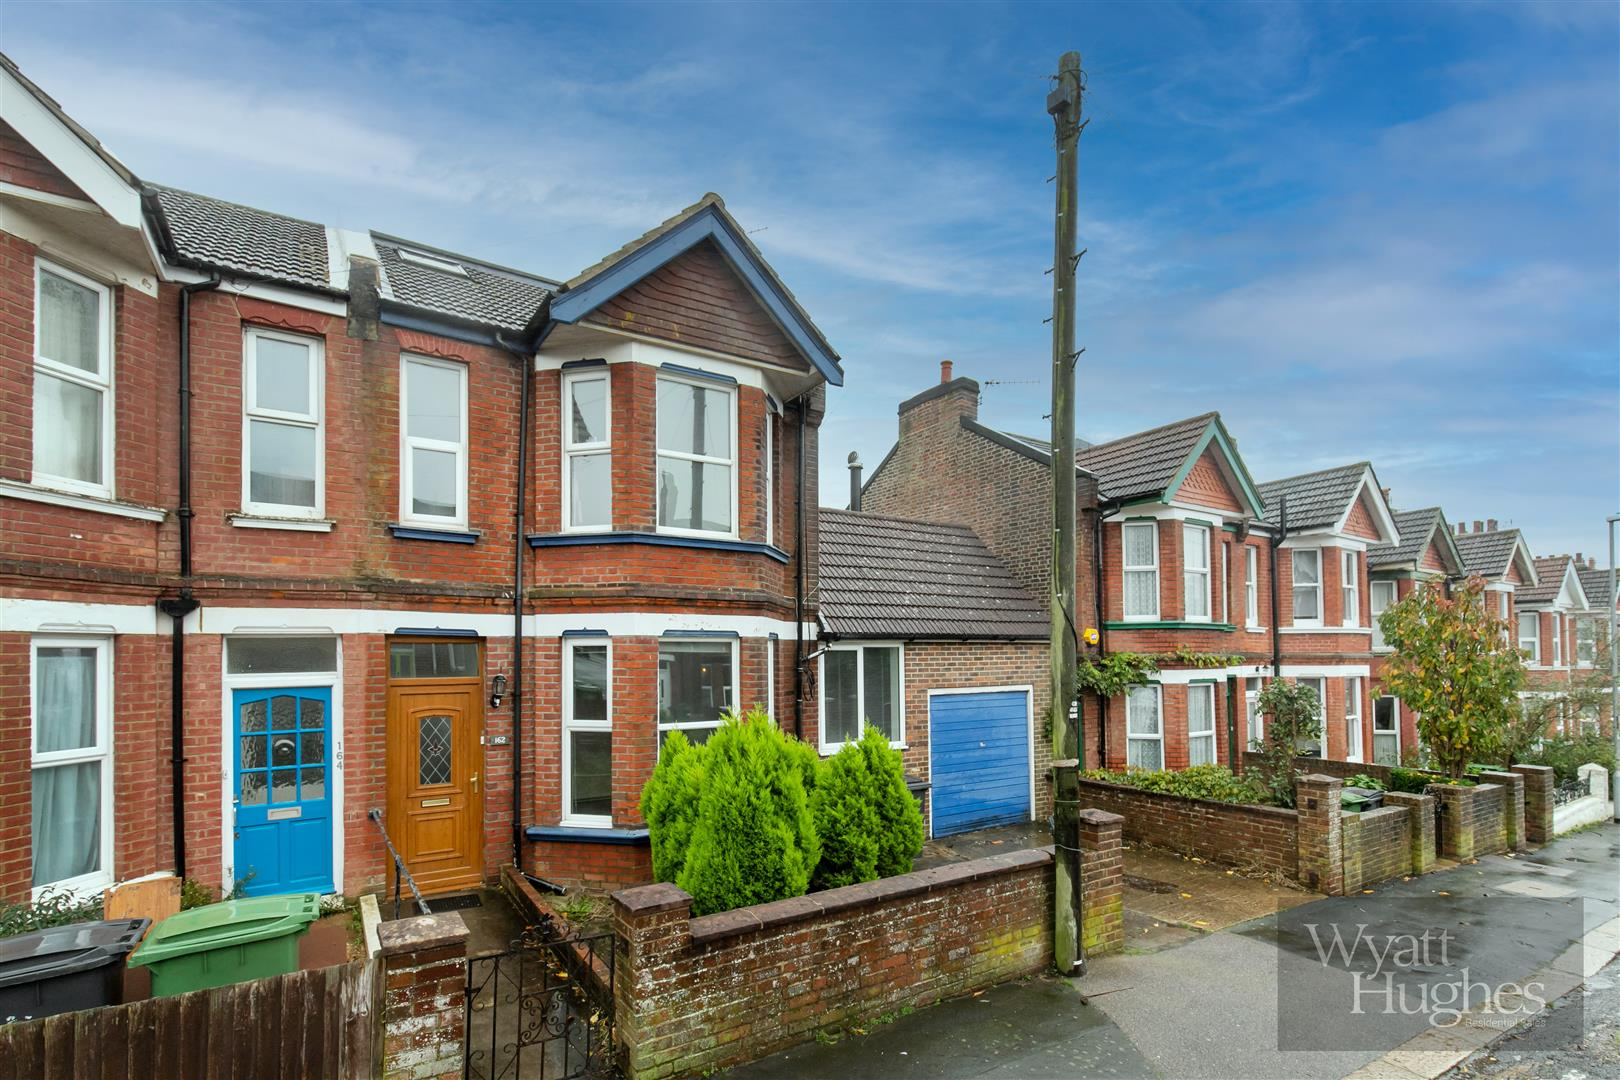 3 bed semi-detached-house for sale in Edmund Road, Hastings, TN35